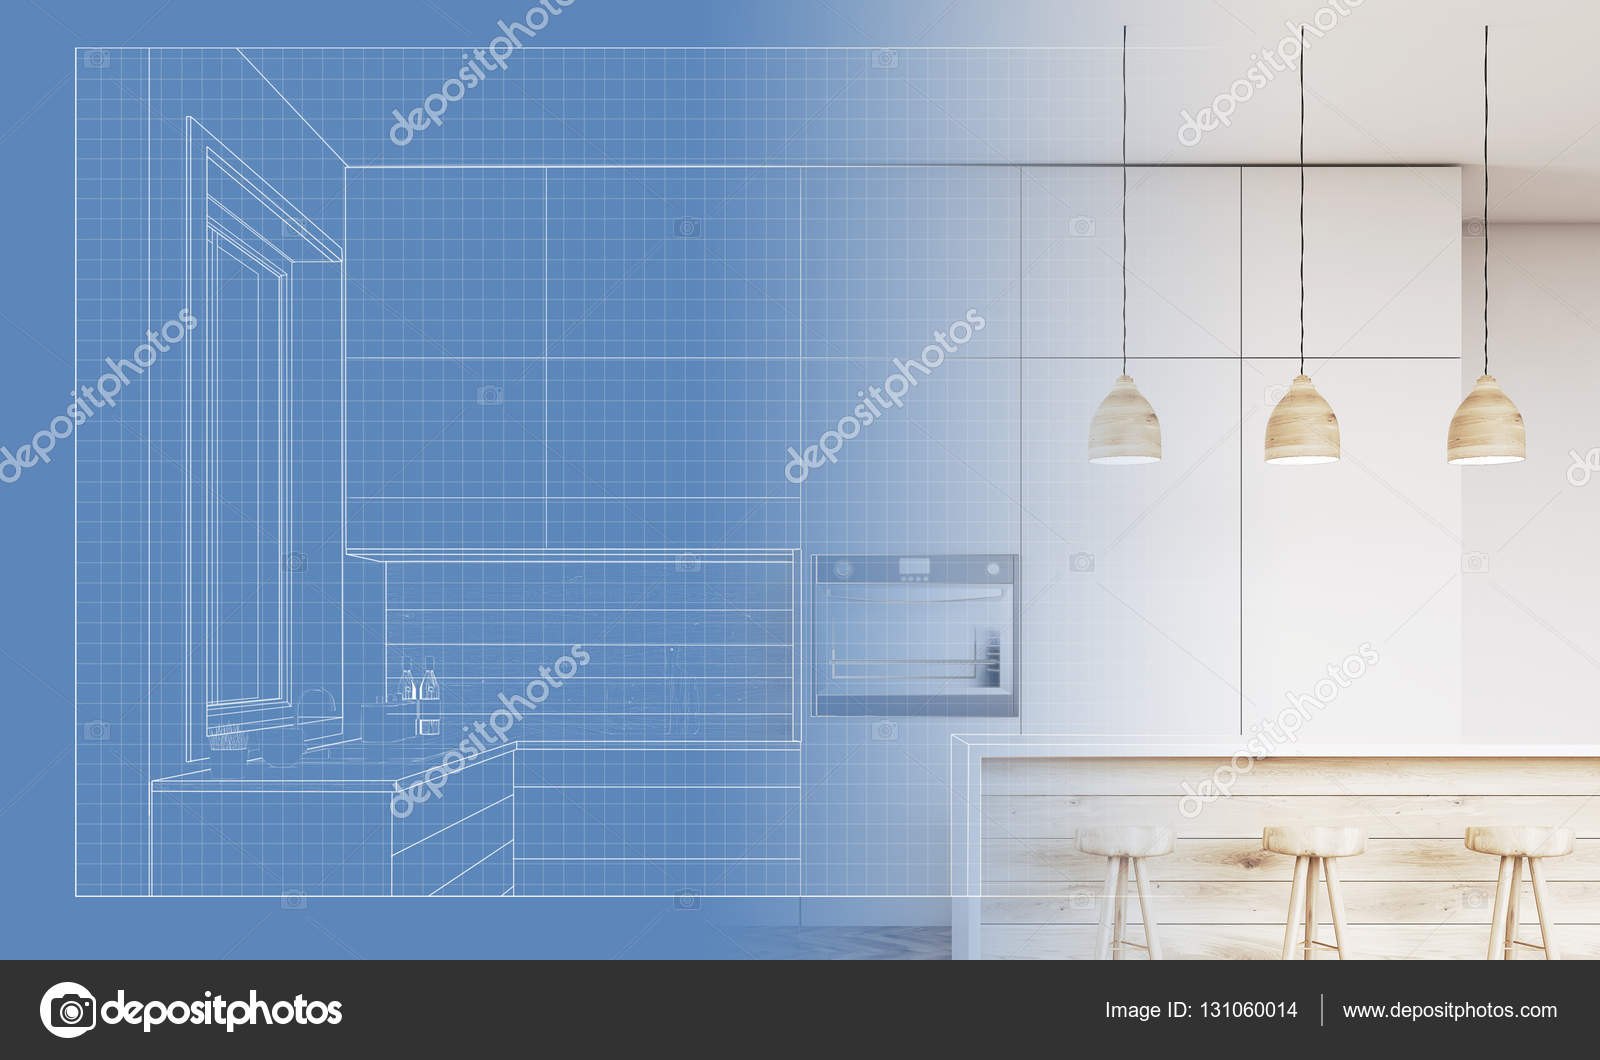 Blueprint Of A Kitchen And Its Implementation Stock Photo